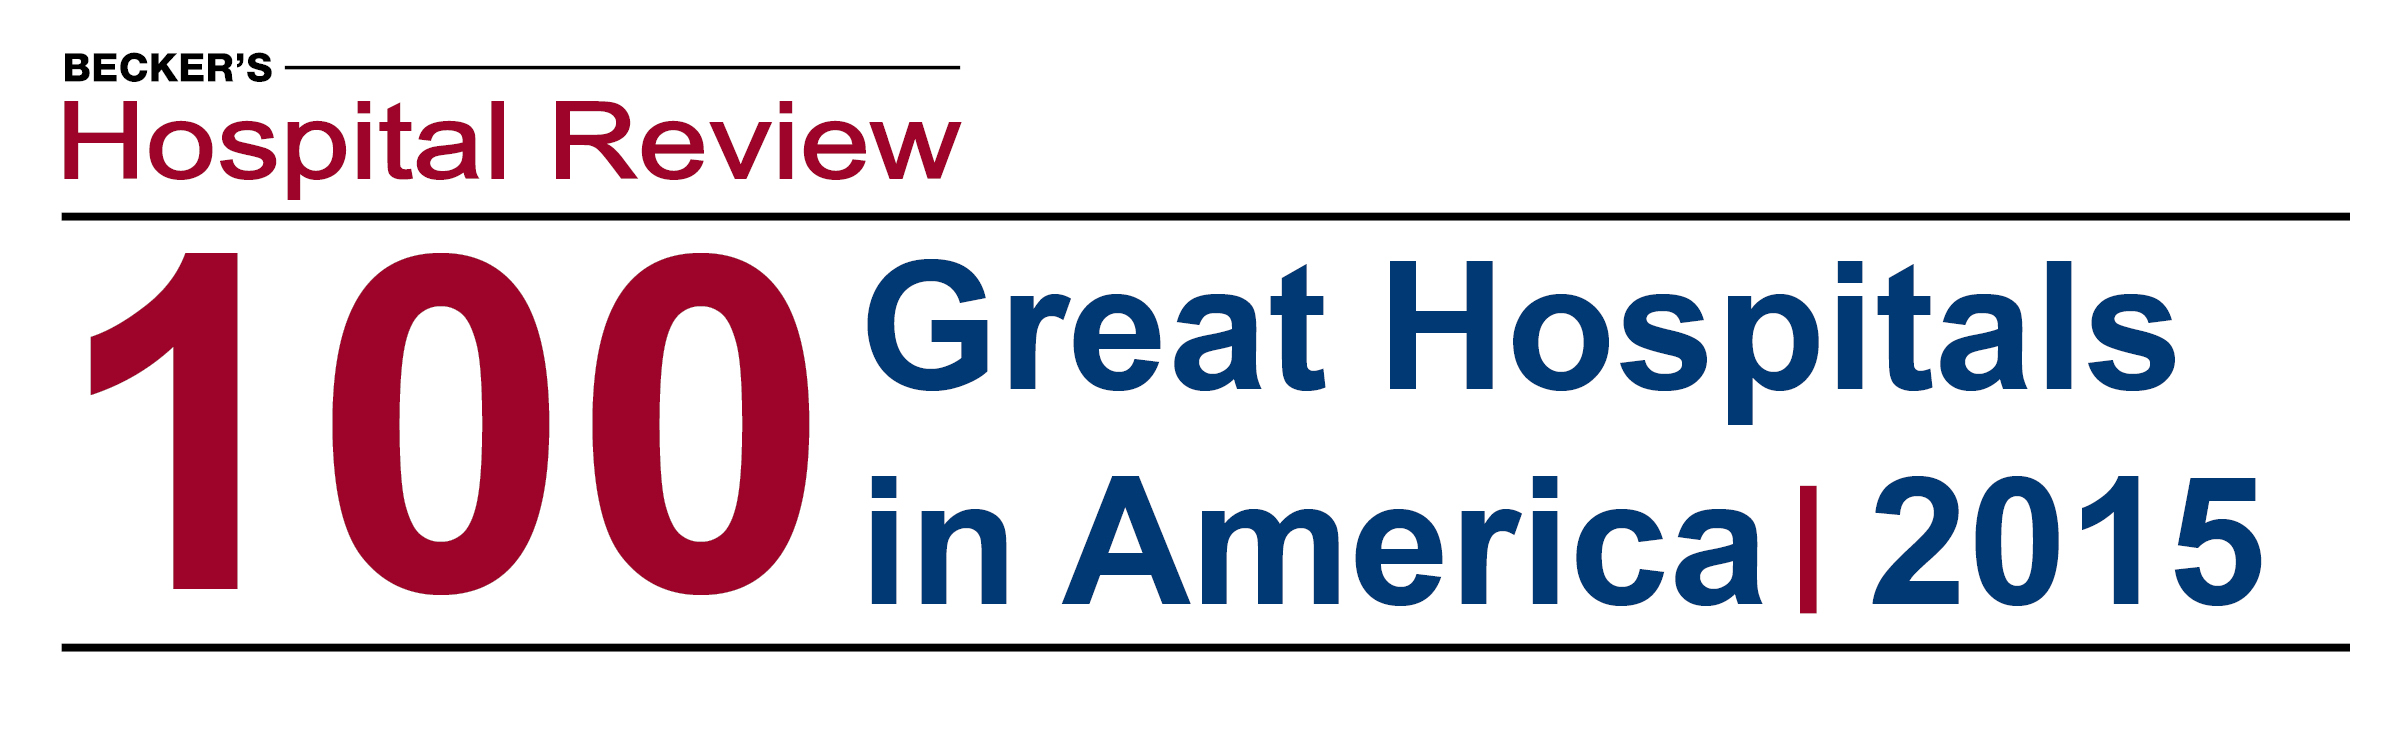 100 great hospitals in America | 2015